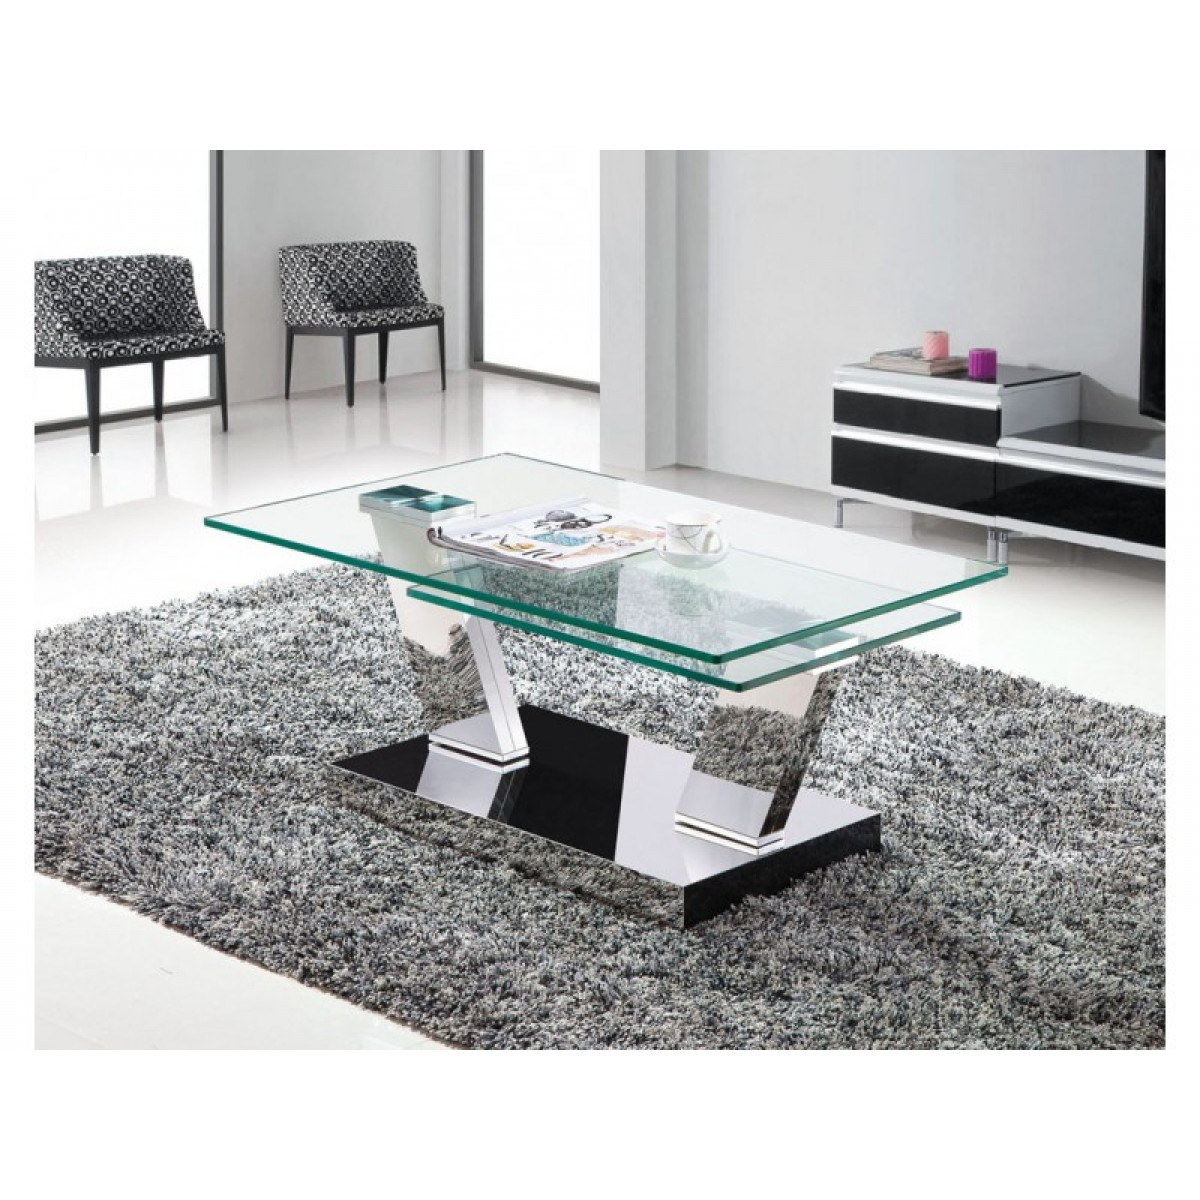 Table basse double plateaux transparents carr s chrom s for Design sofatisch